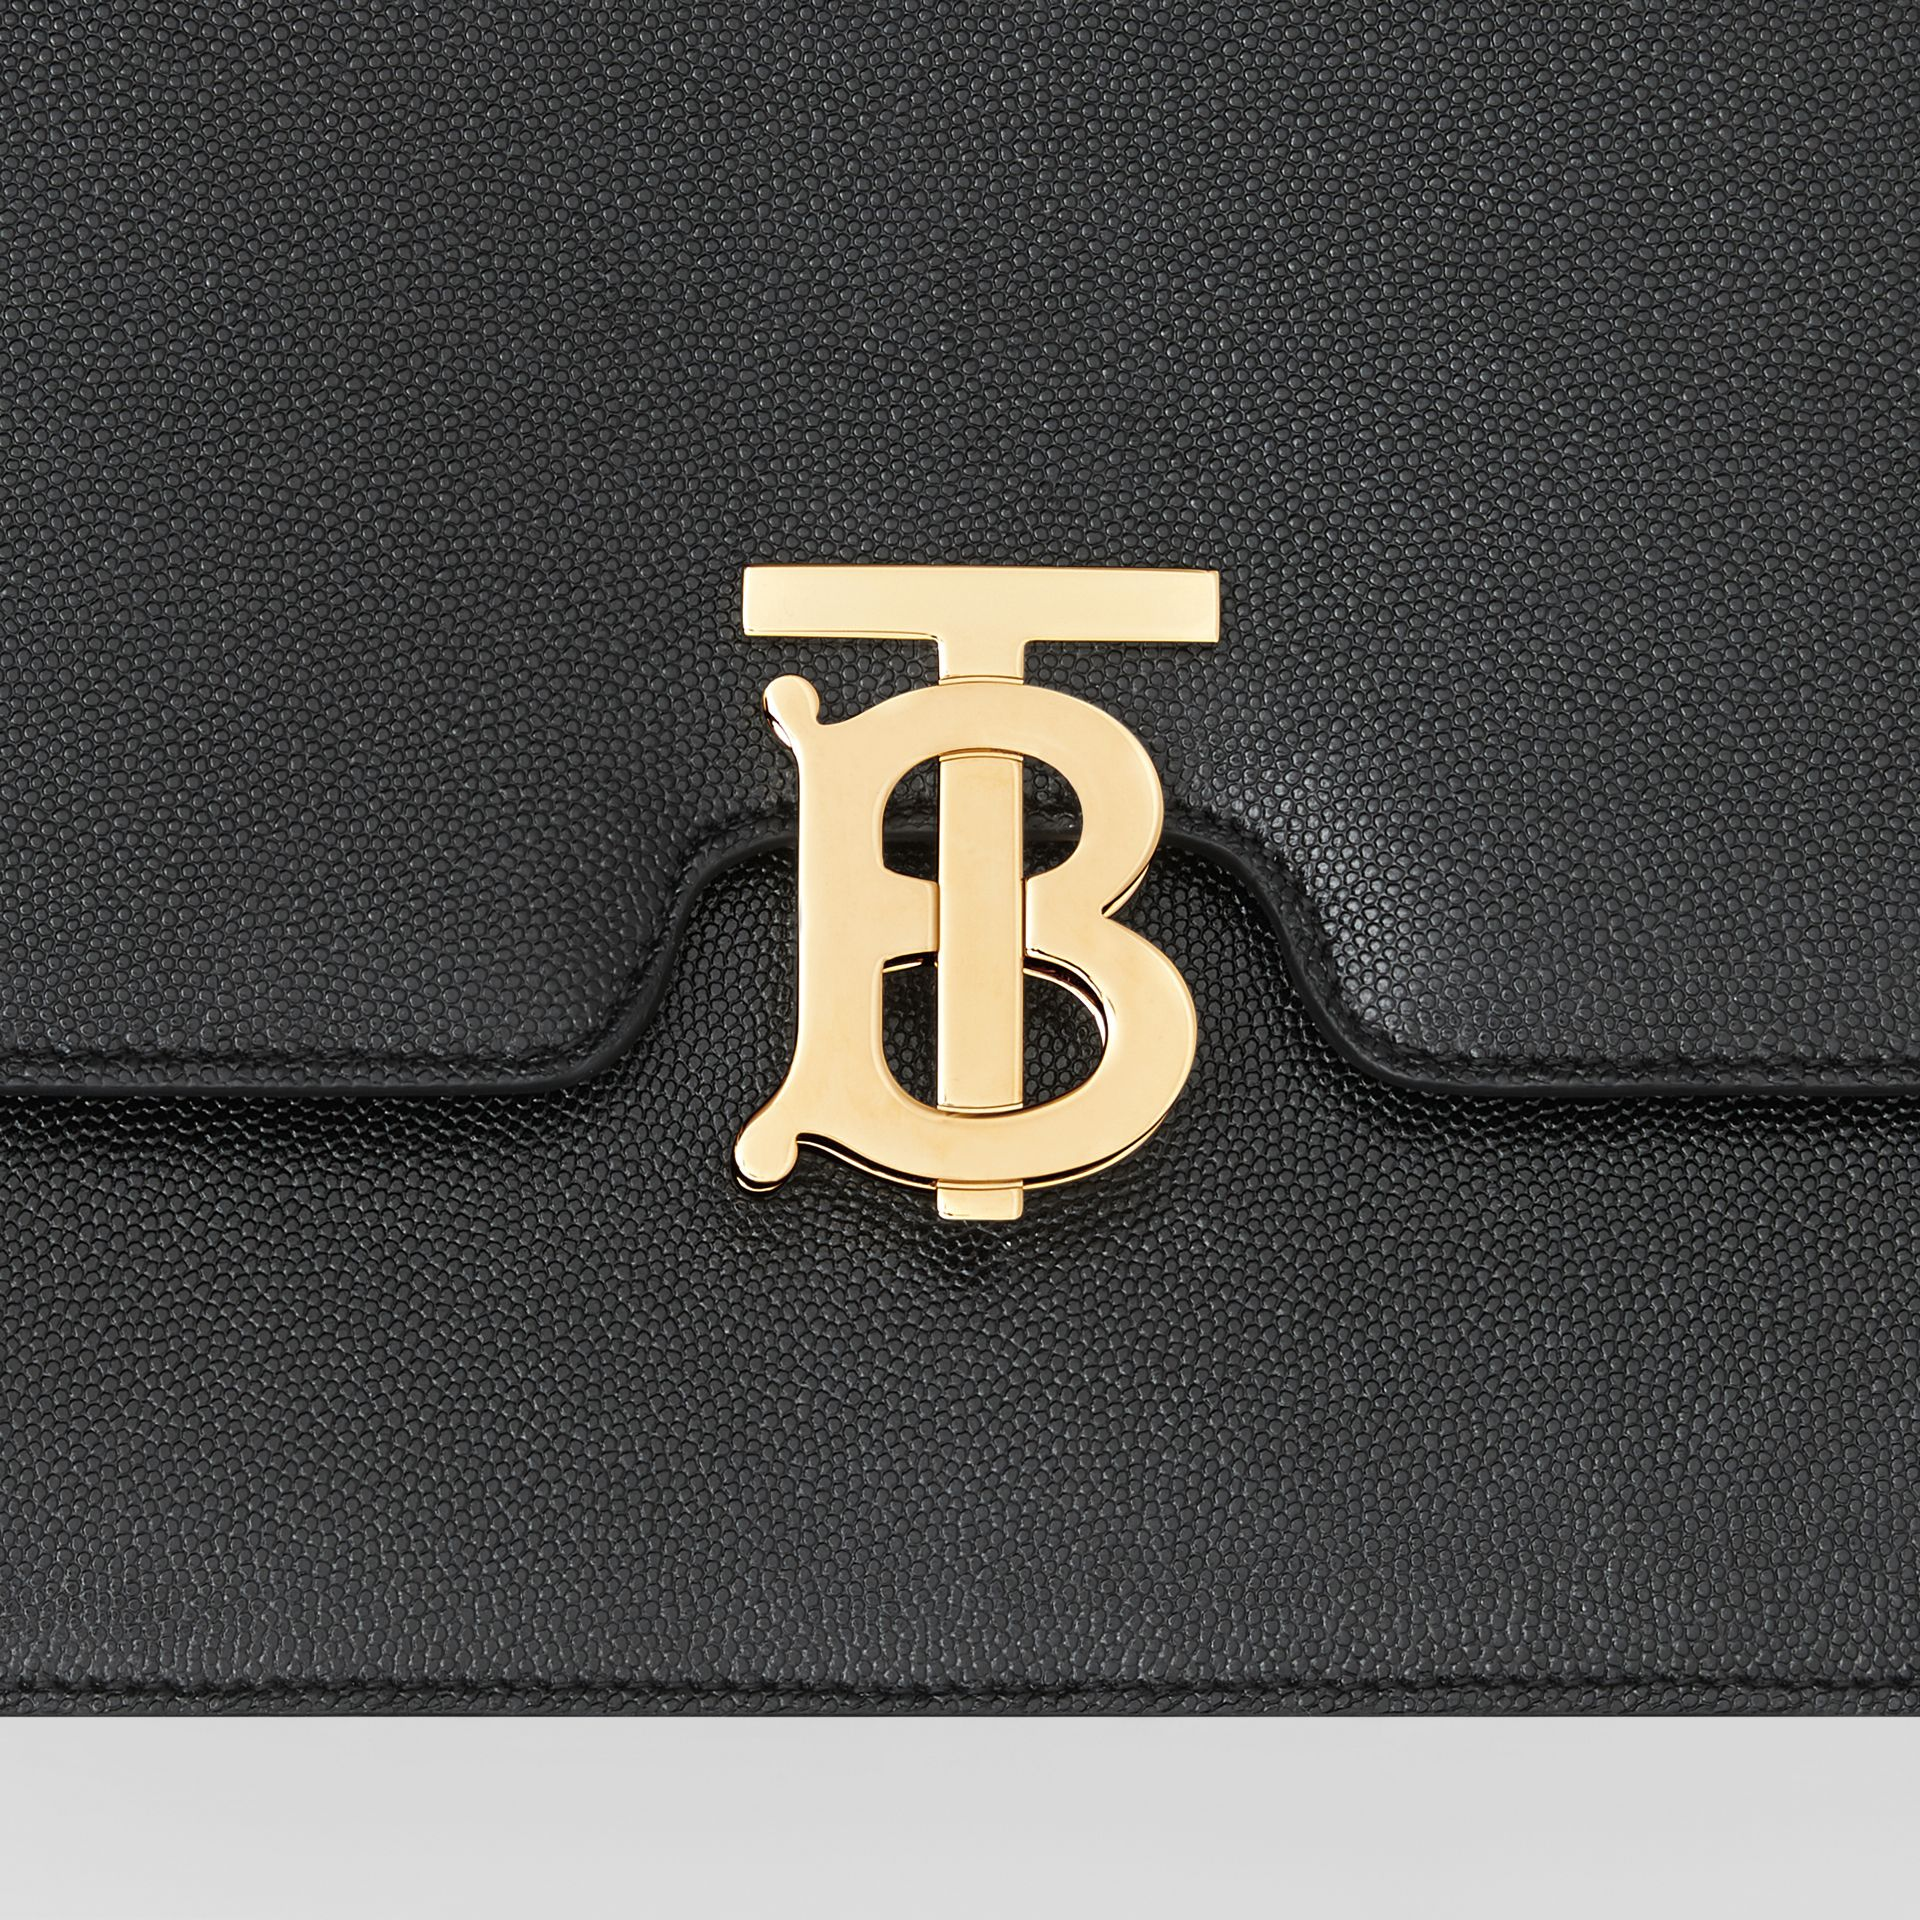 Small Grainy Leather TB Bag in Black - Women | Burberry - gallery image 1